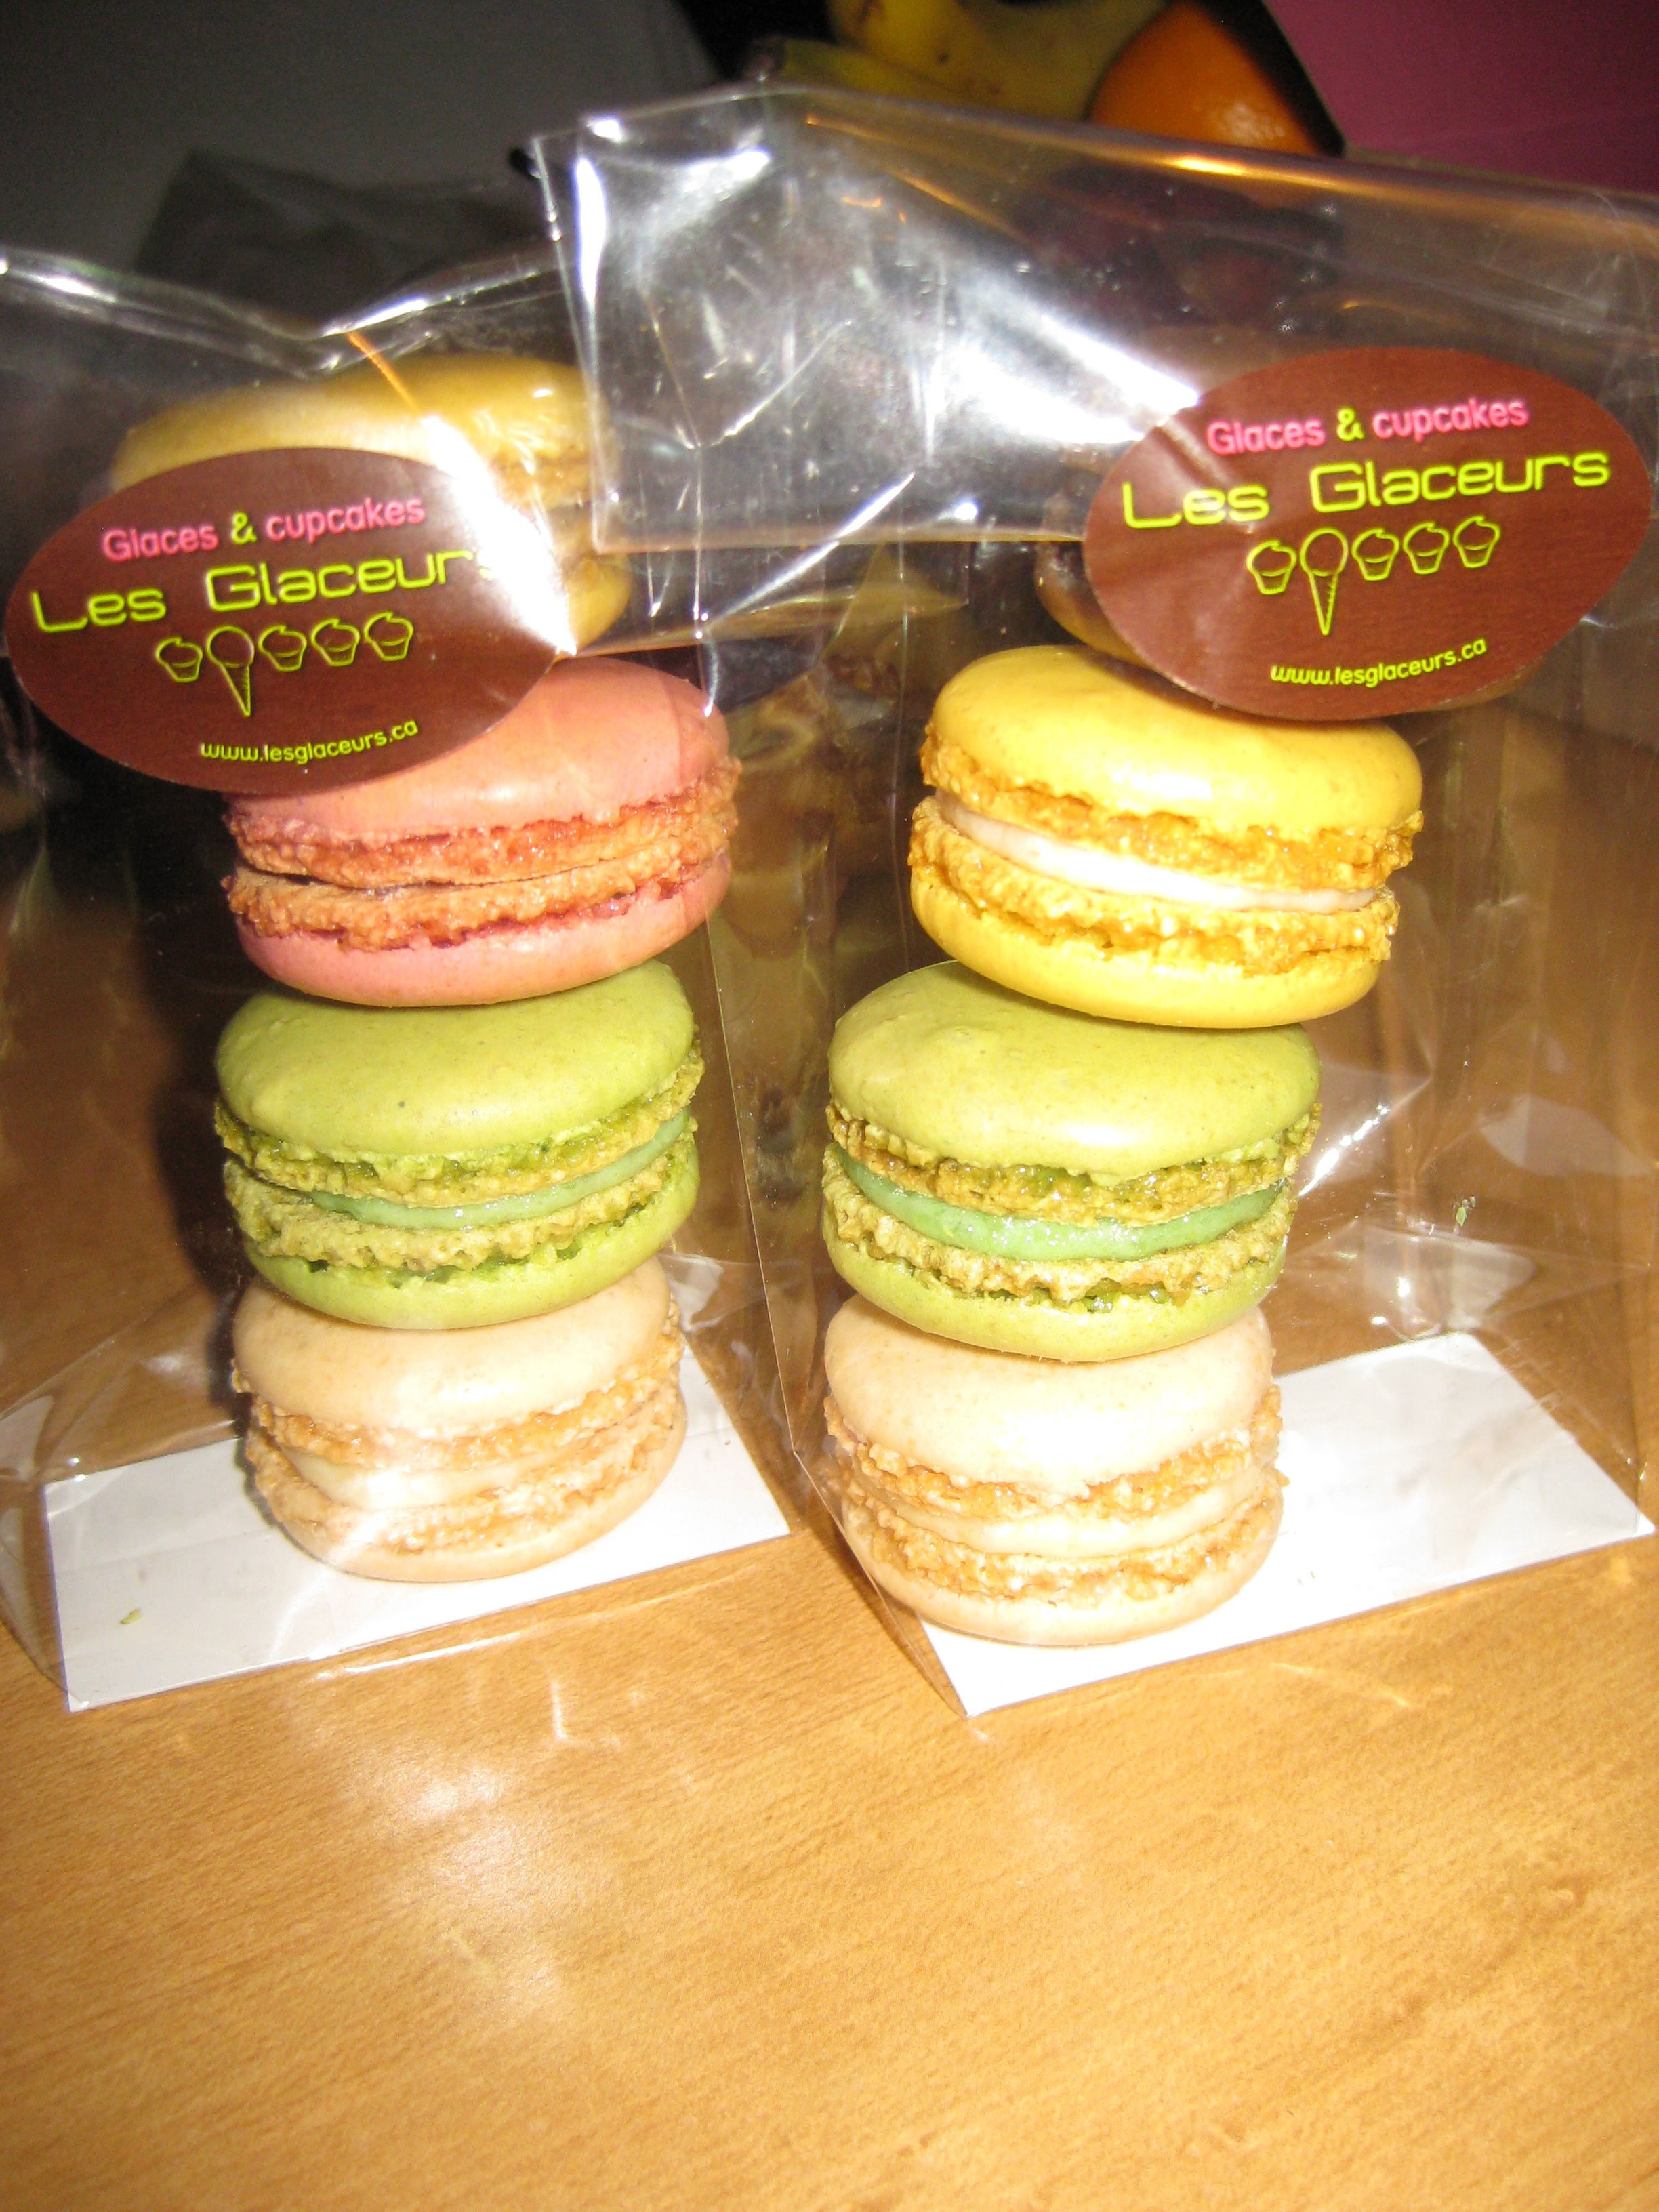 Macarons 1 - Les Glaceurs